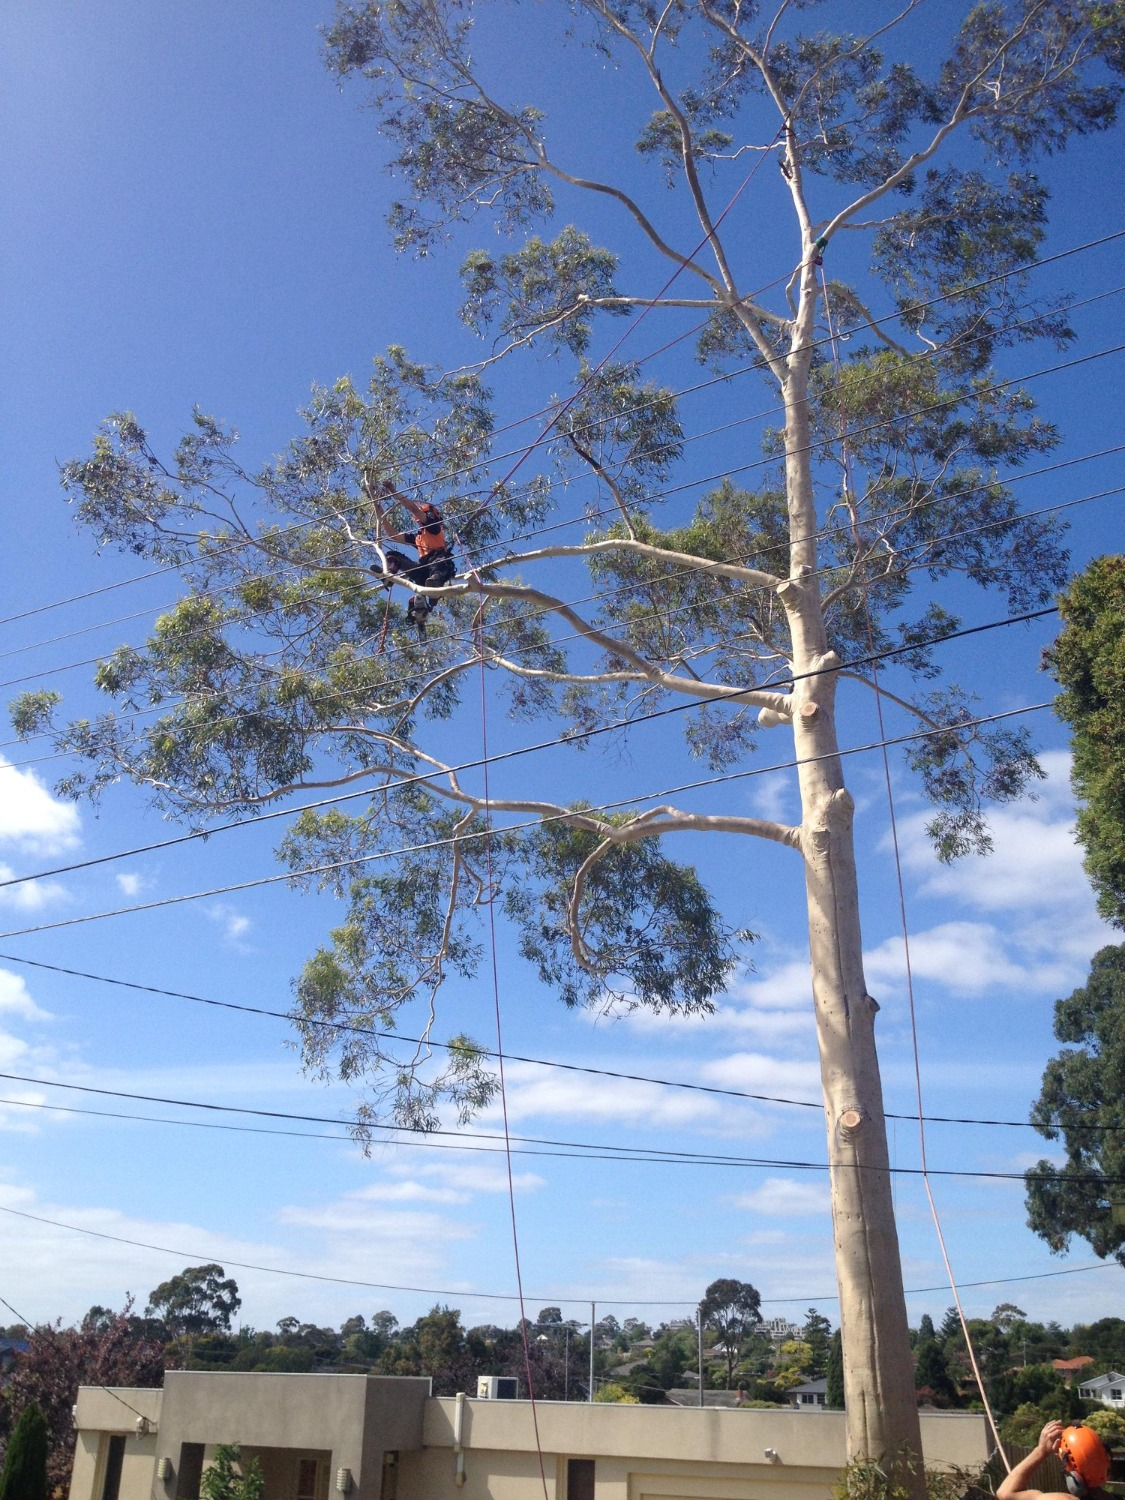 Tree removal through service wires